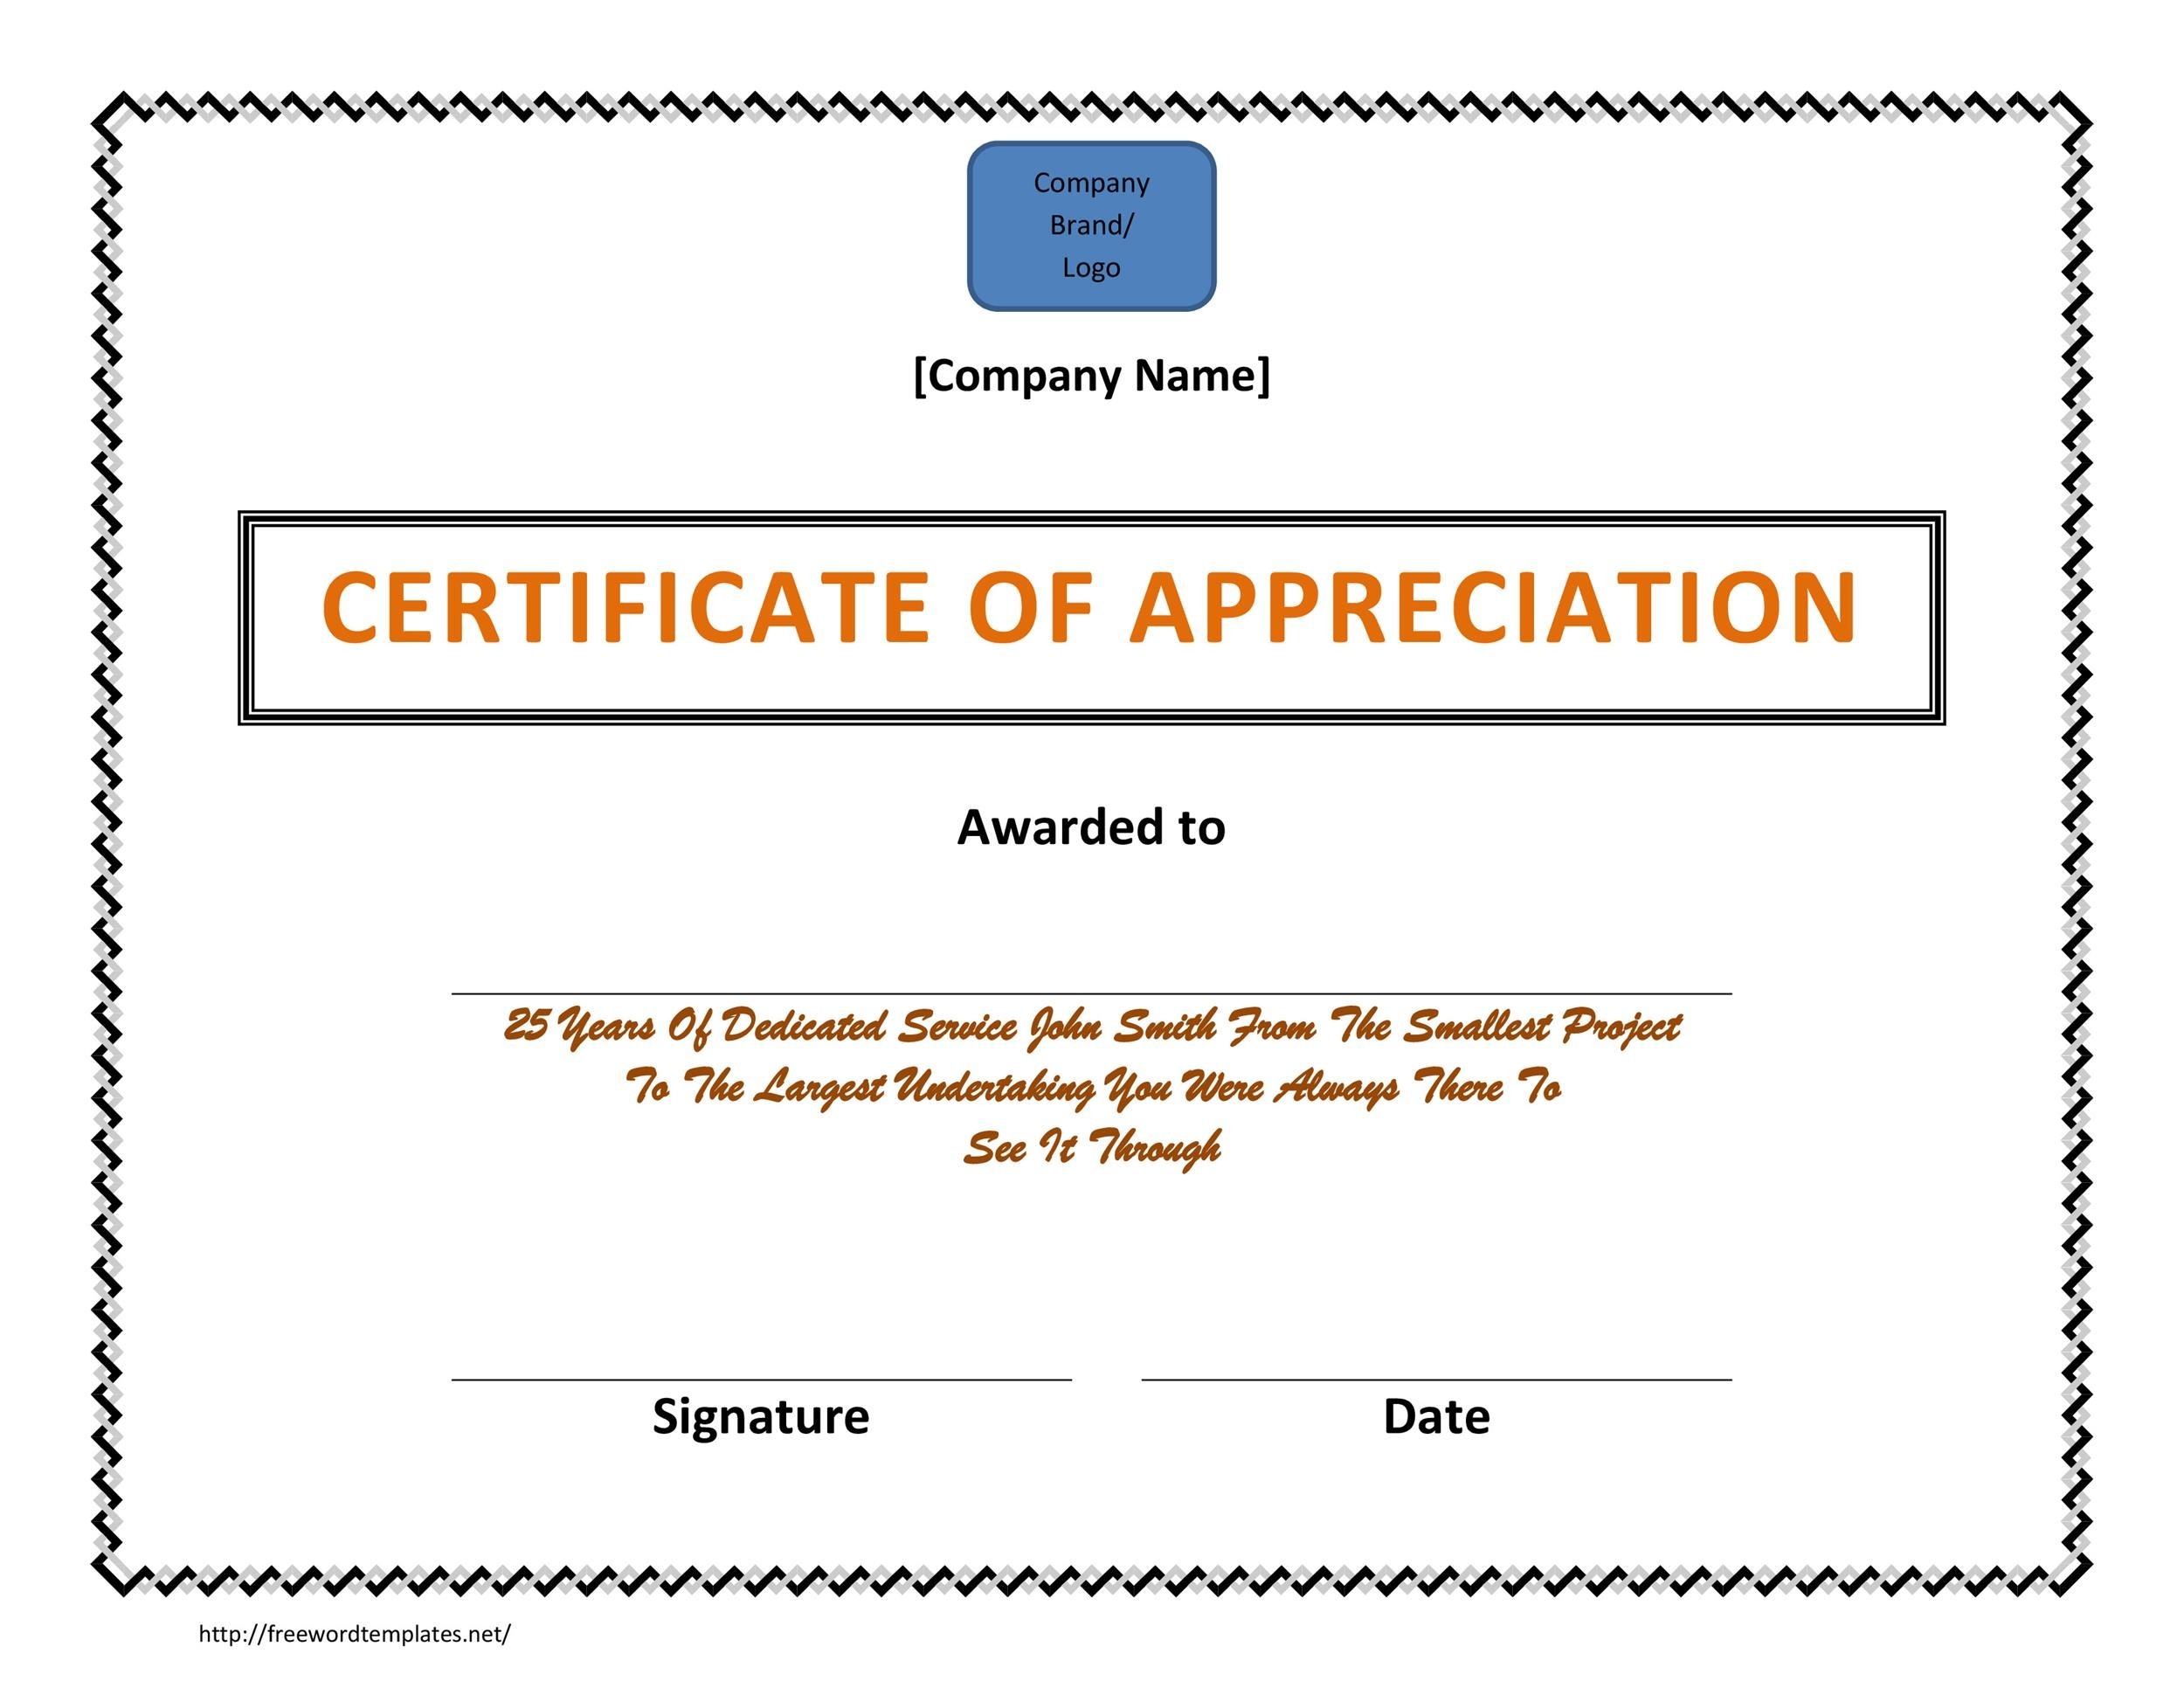 Certificate of appreciation letter geccetackletarts 30 free certificate of appreciation templates and letters spiritdancerdesigns